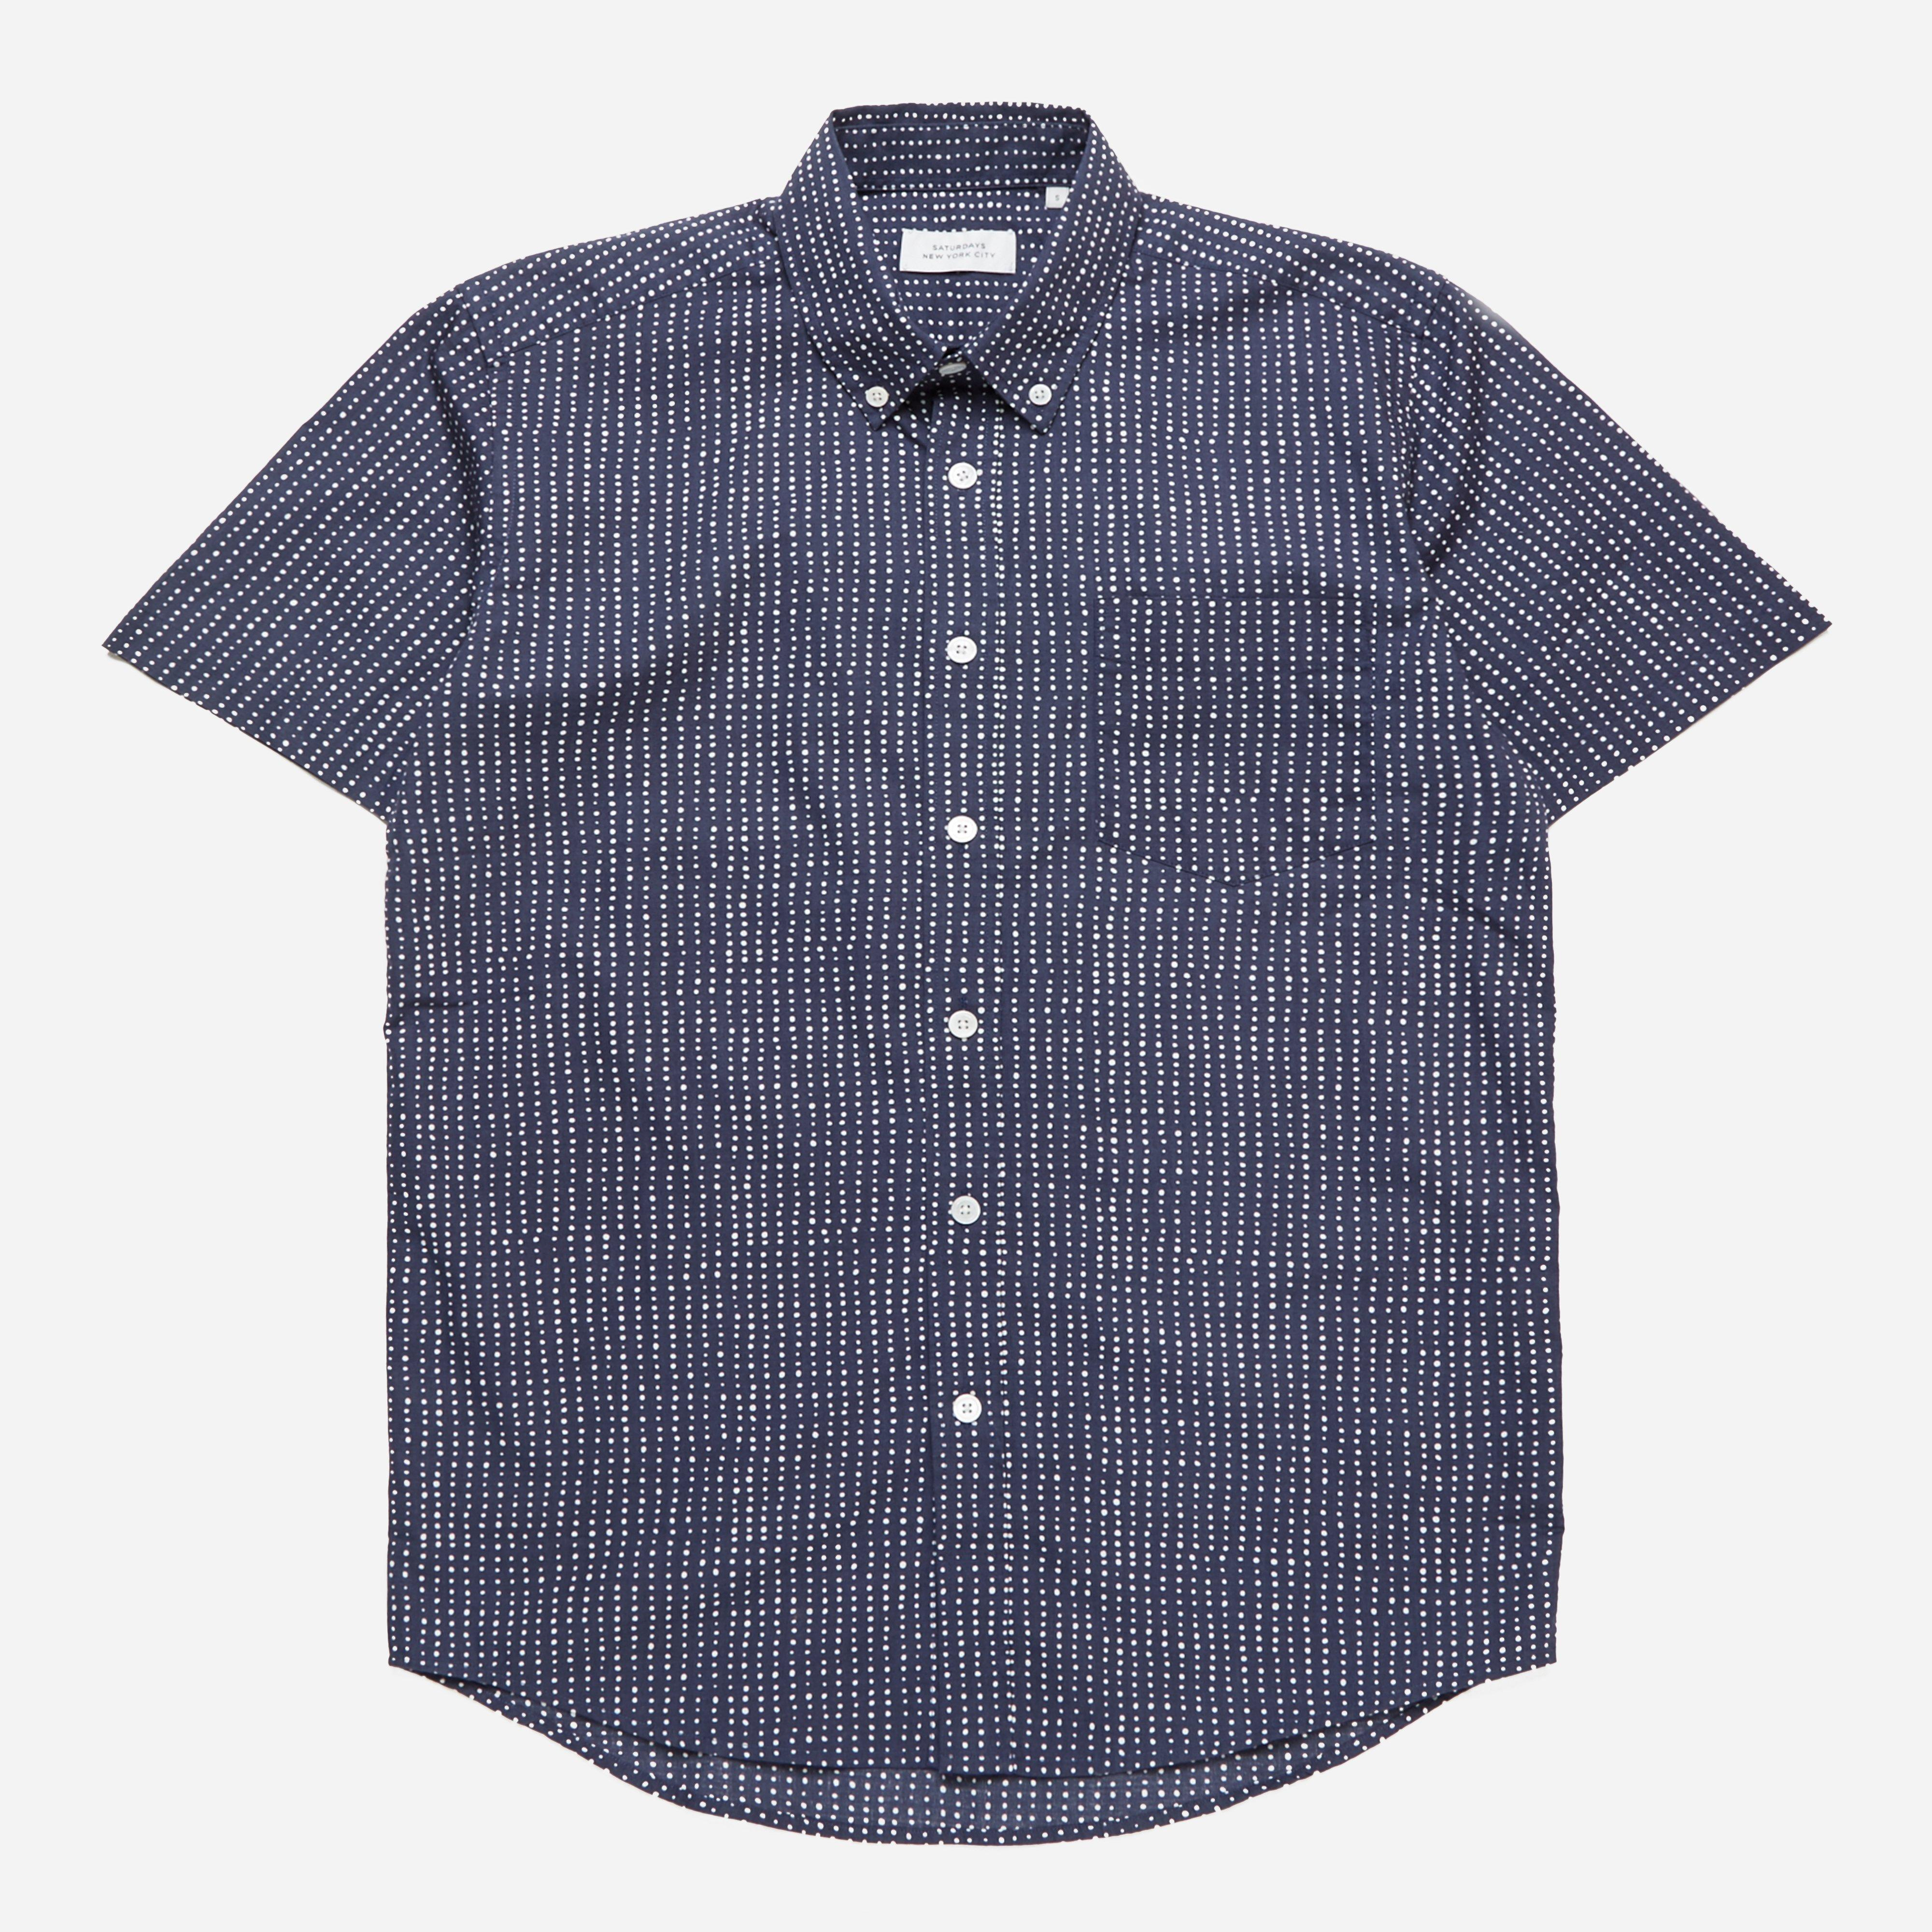 Saturdays Surf NYC Stipple Print S/S Shirt